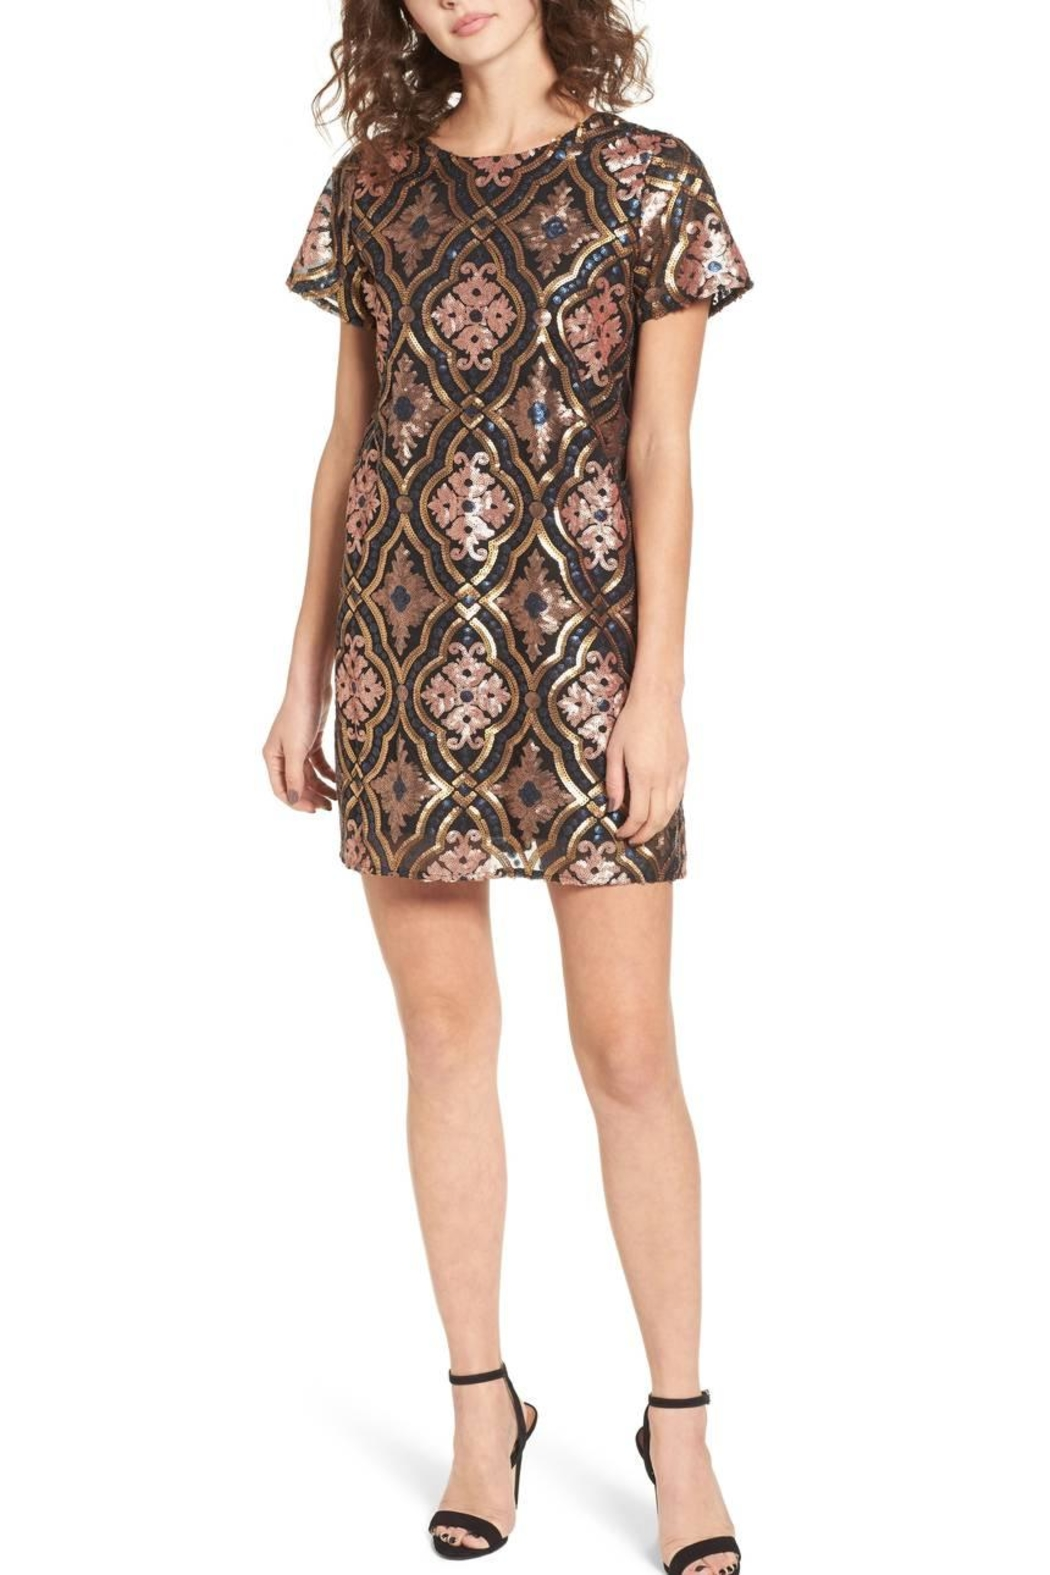 Show Me Your Mumu Sequins Colorful Dress - Front Cropped Image